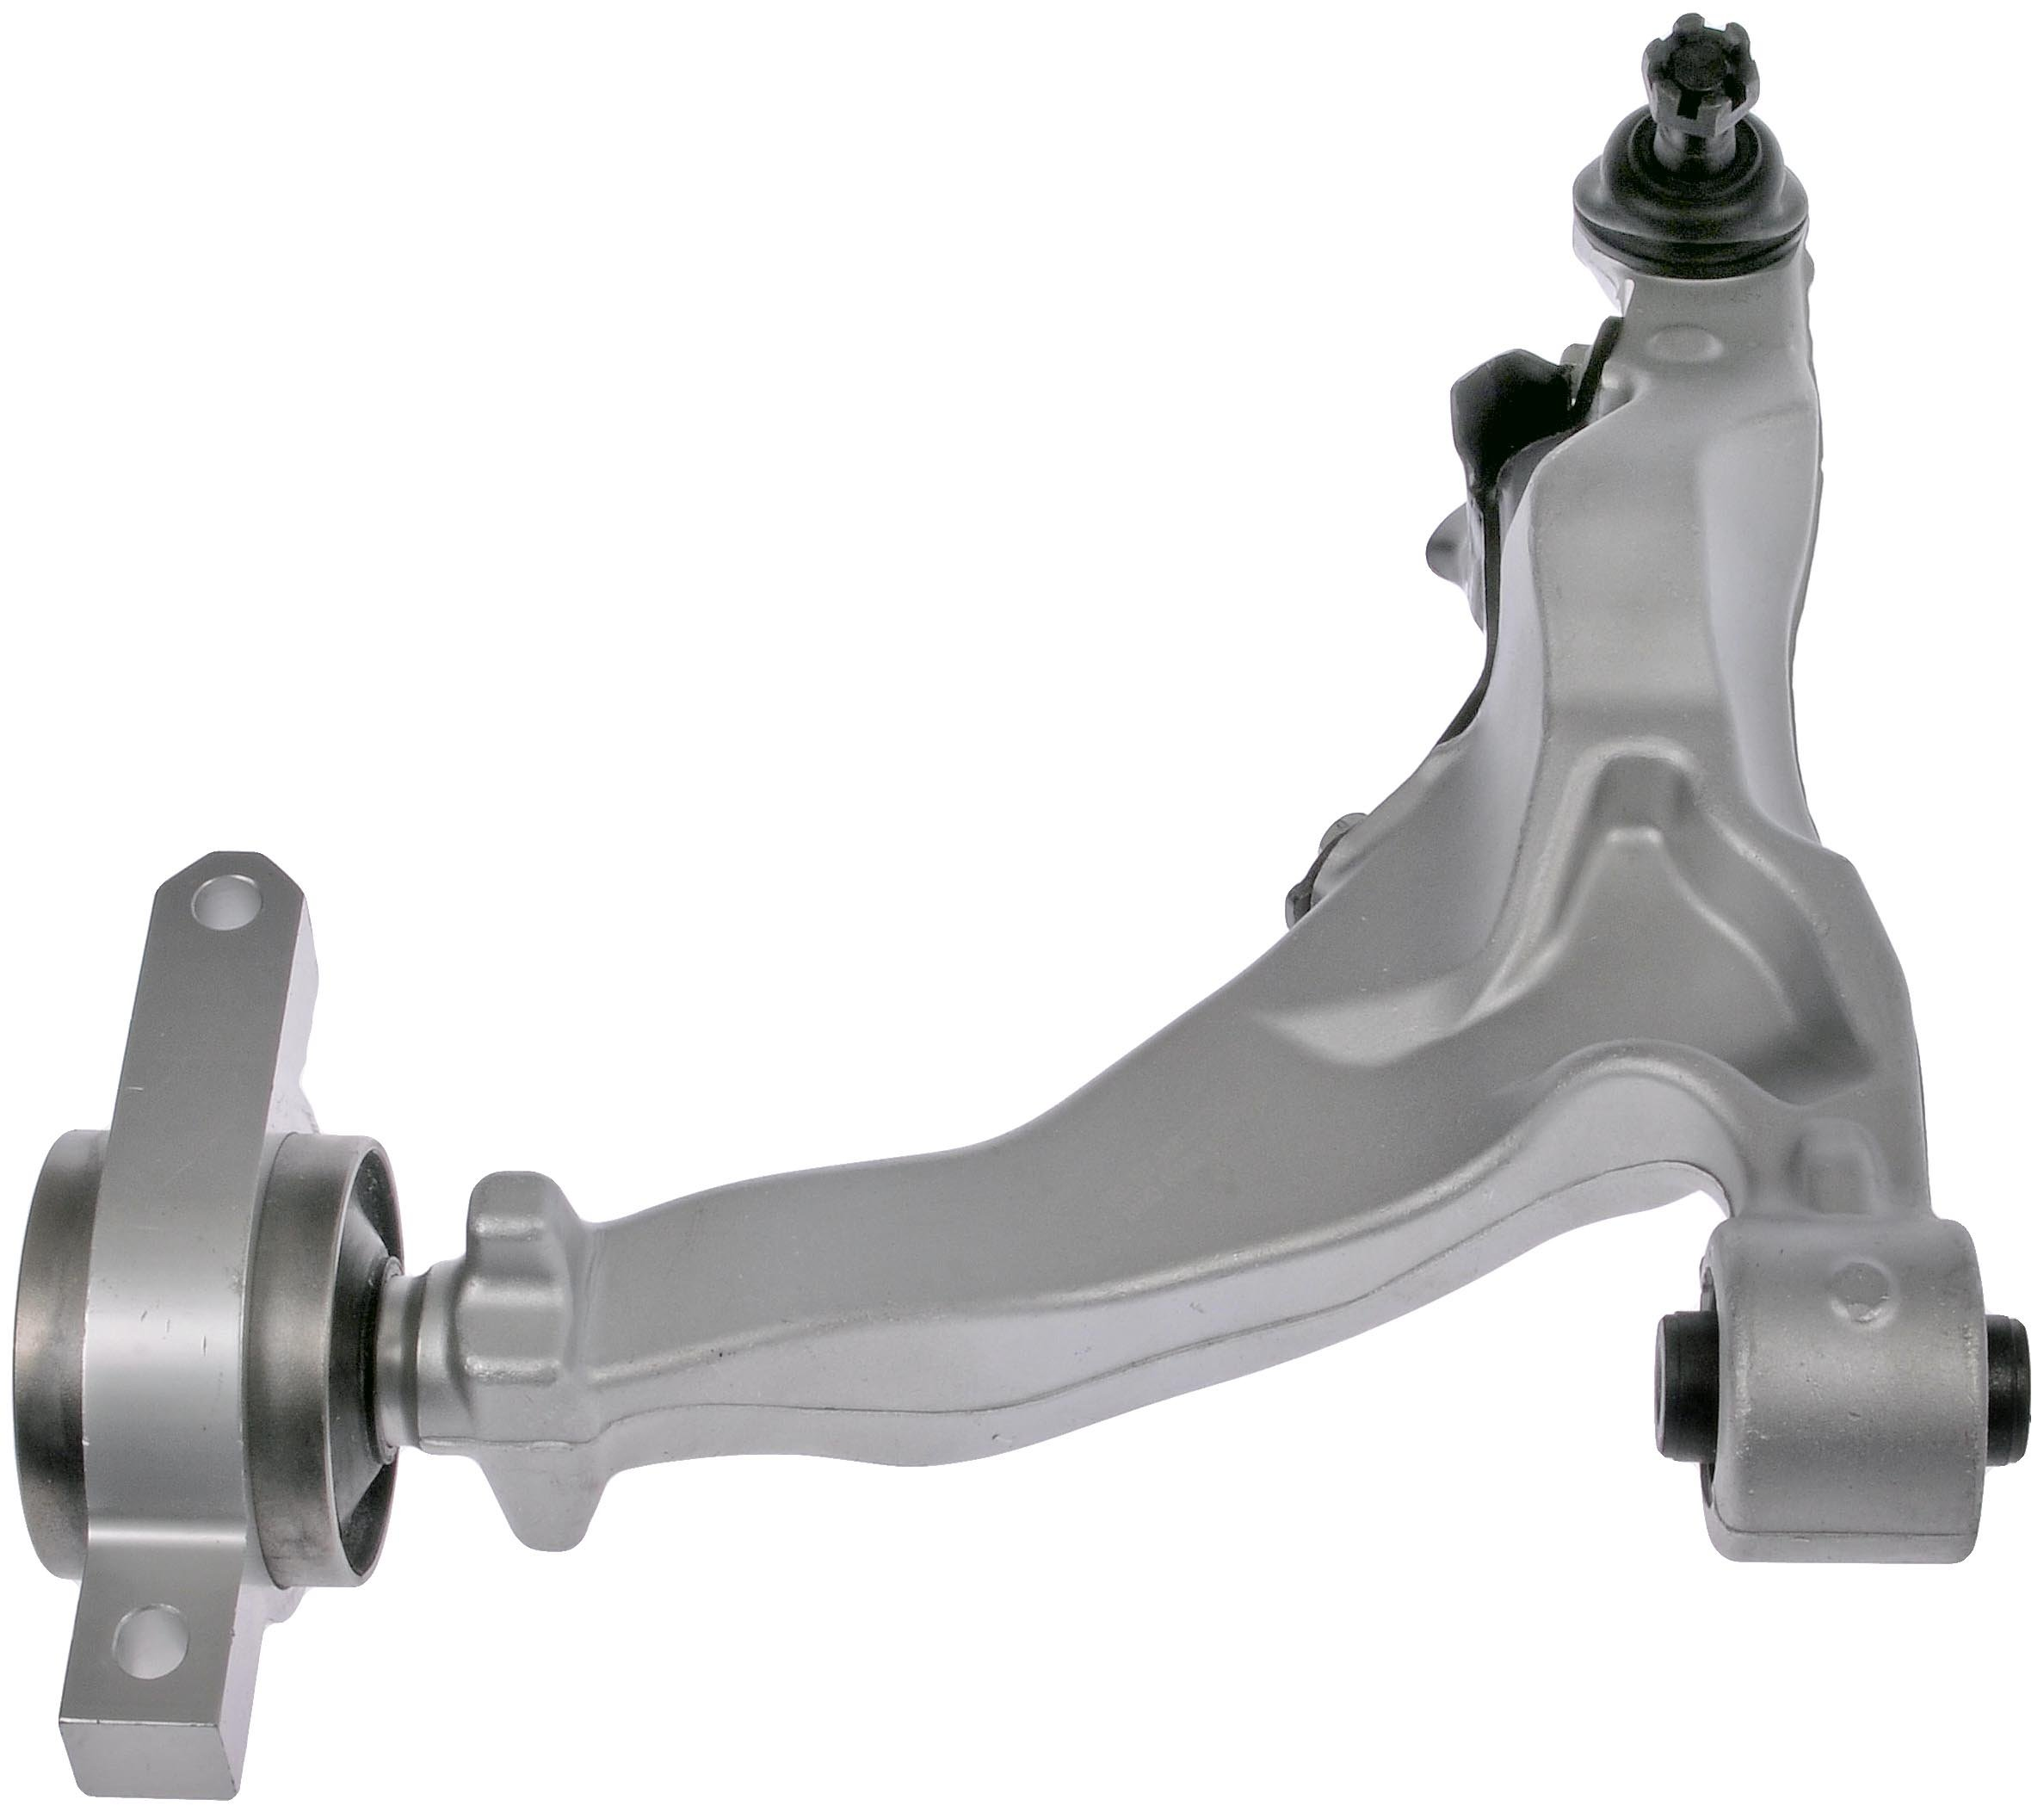 Dorman 522-551 Front Left Lower Suspension Control Arm and Ball Joint Assembly for Select Infiniti Models